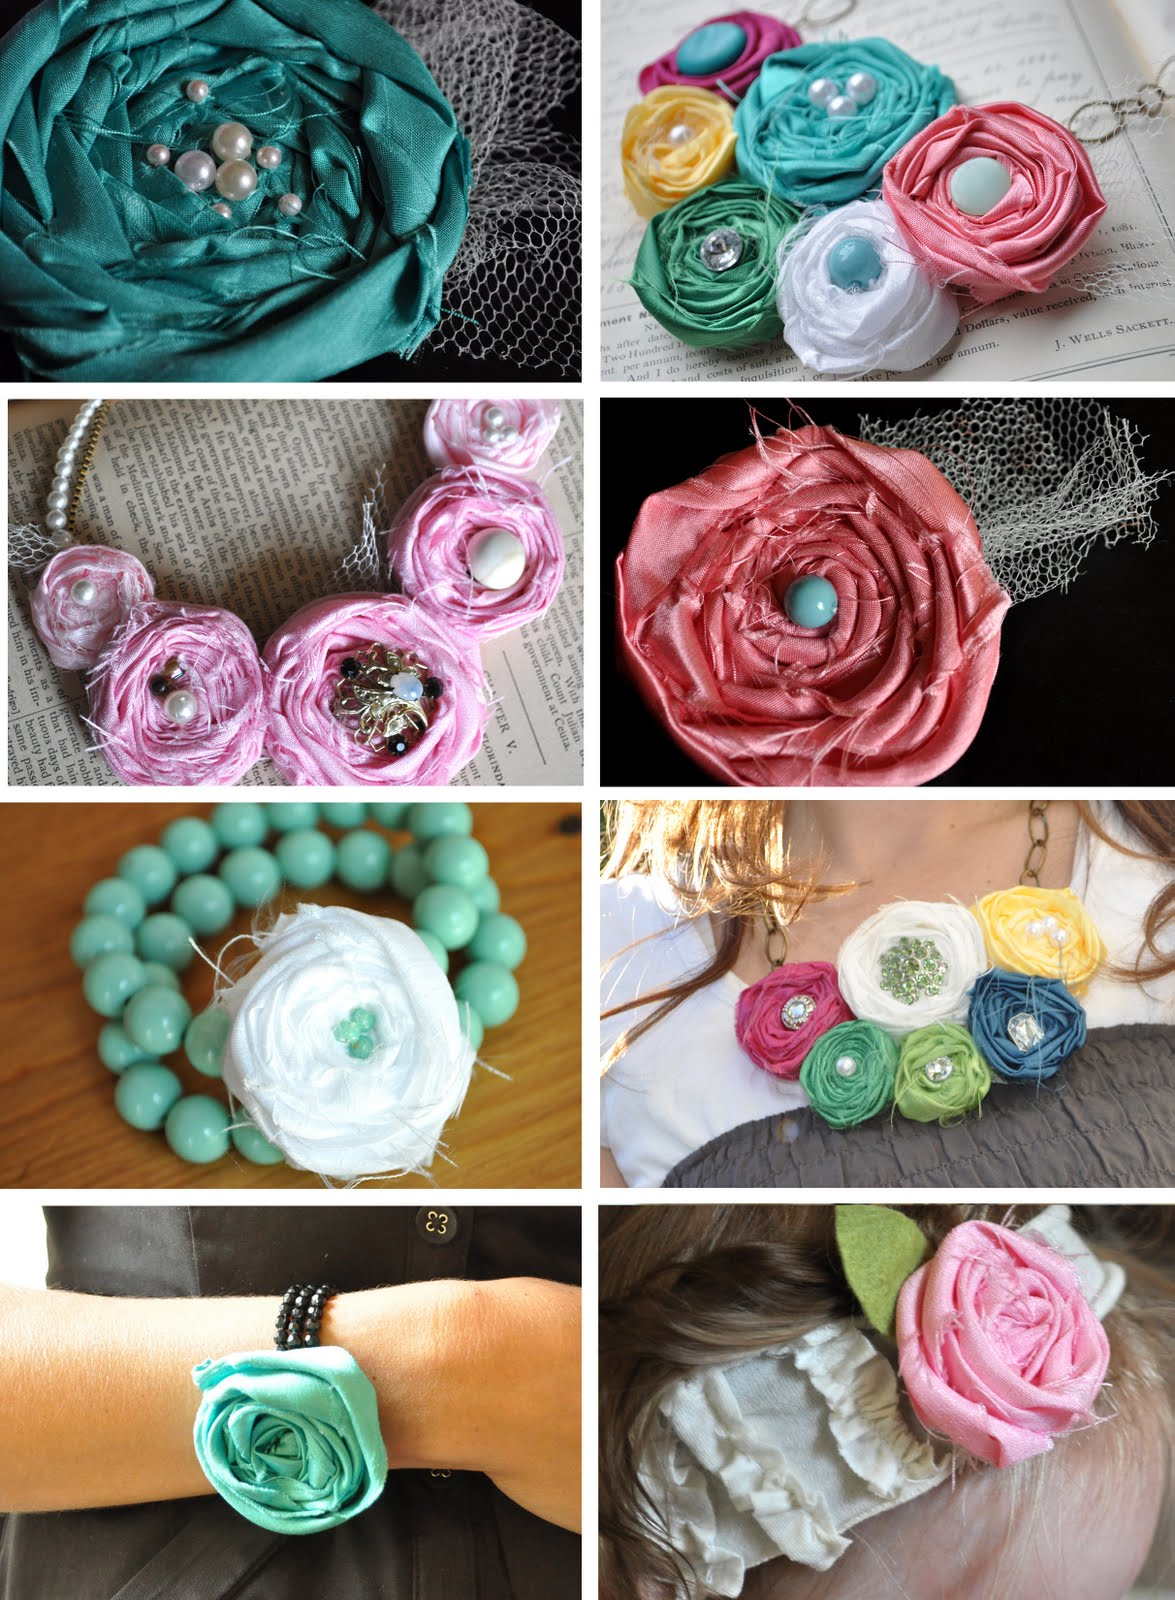 fabric rosette tutorial extravaganza! Little Birdie Secrets